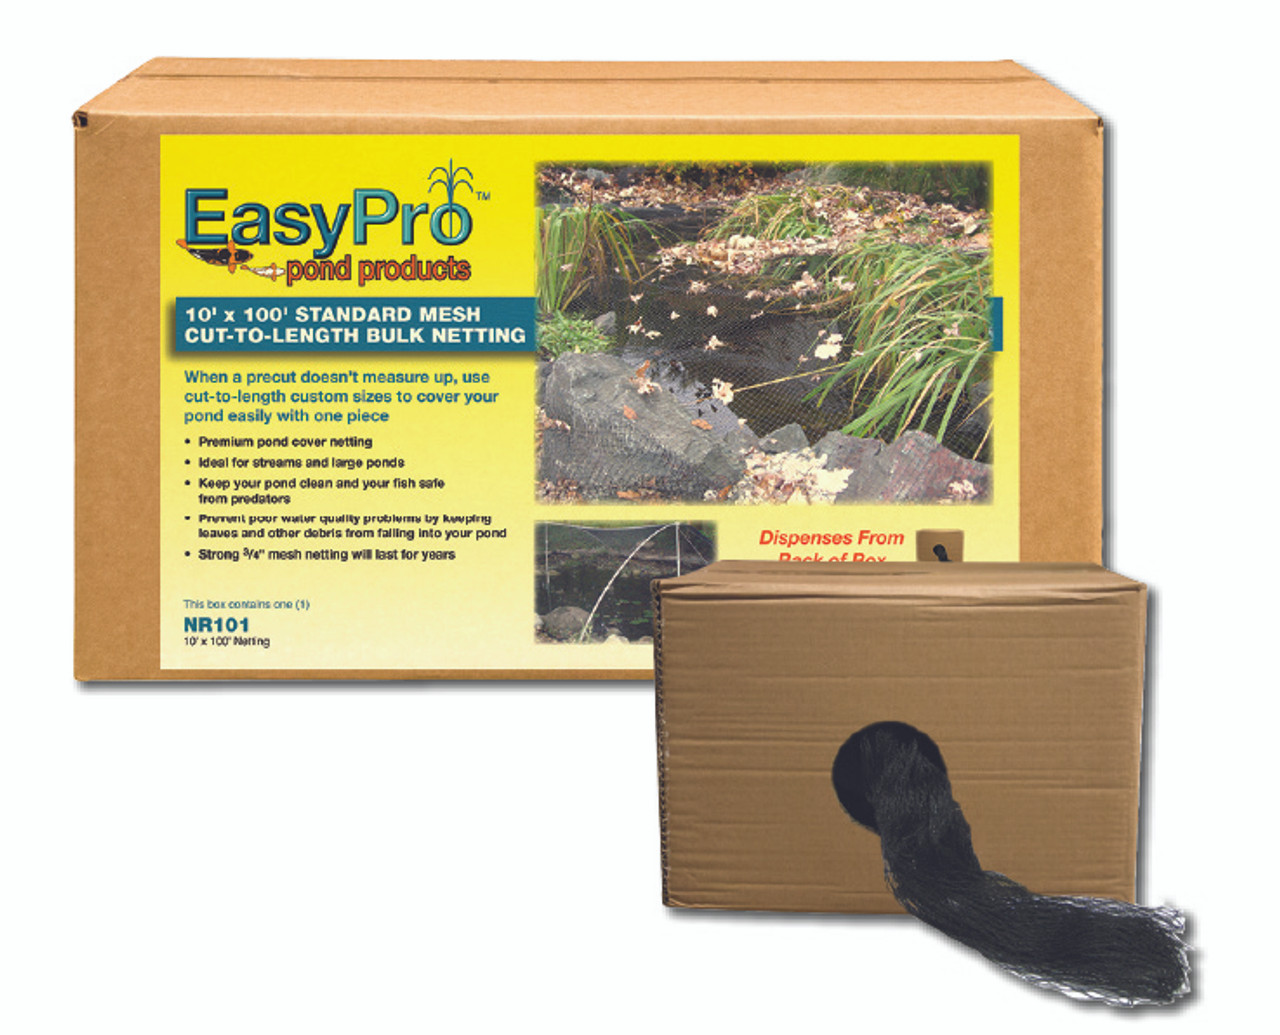 3/4-in. EasyPro Pond Cover Netting - Boxed